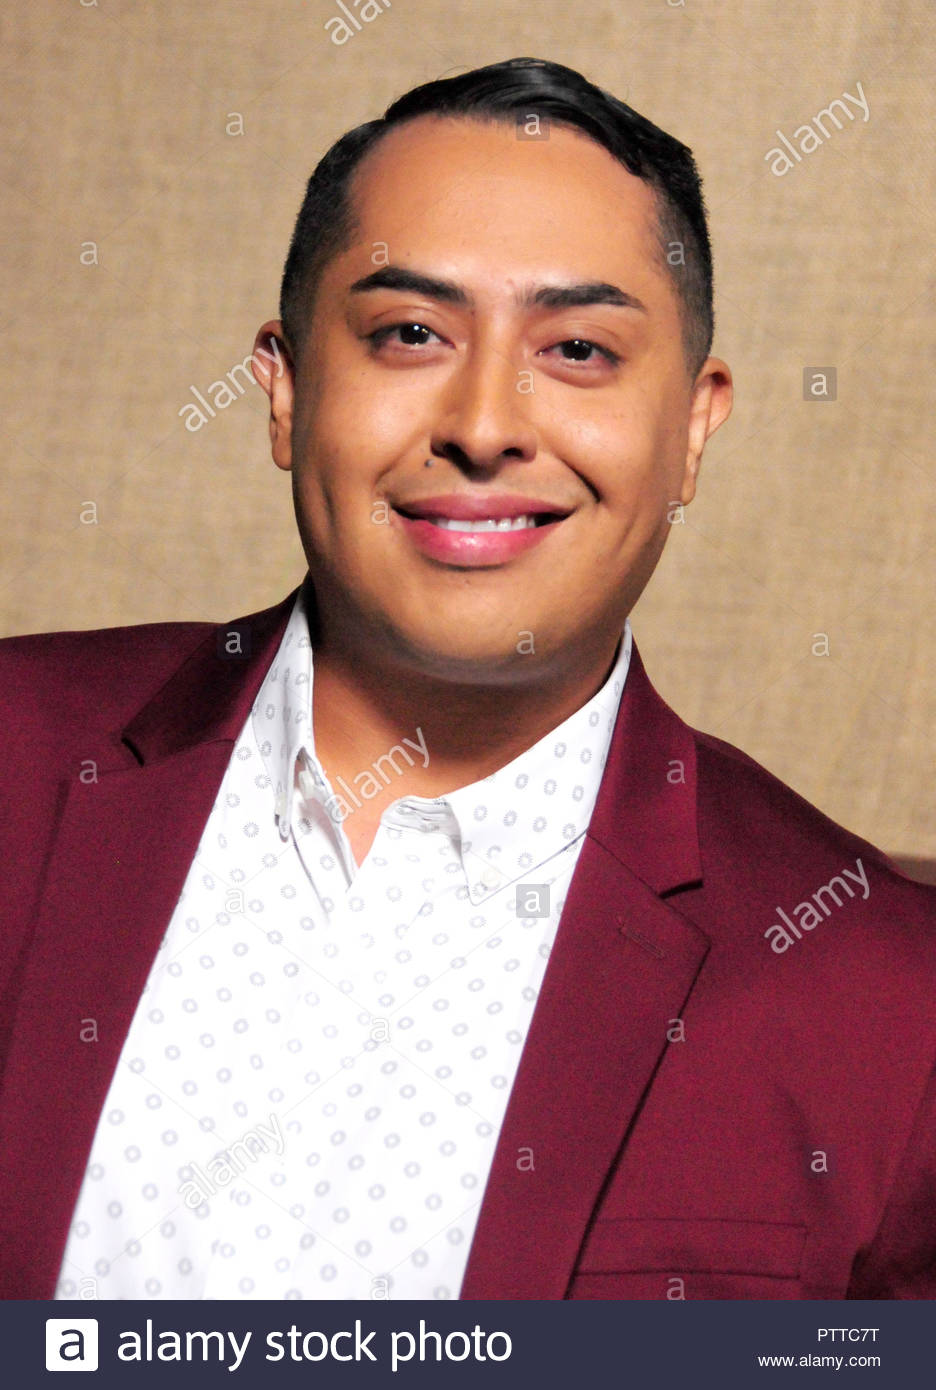 los-angeles-usa-10th-oct-2018-actor-lian-castillo-attends-the-los-angeles-premiere-of-hbo-series-camping-on-october-10-2018-at-paramount-studios-in-los-angeles-california-photo-by-barry-kingalamy-live-news-PTTC7T.jpg